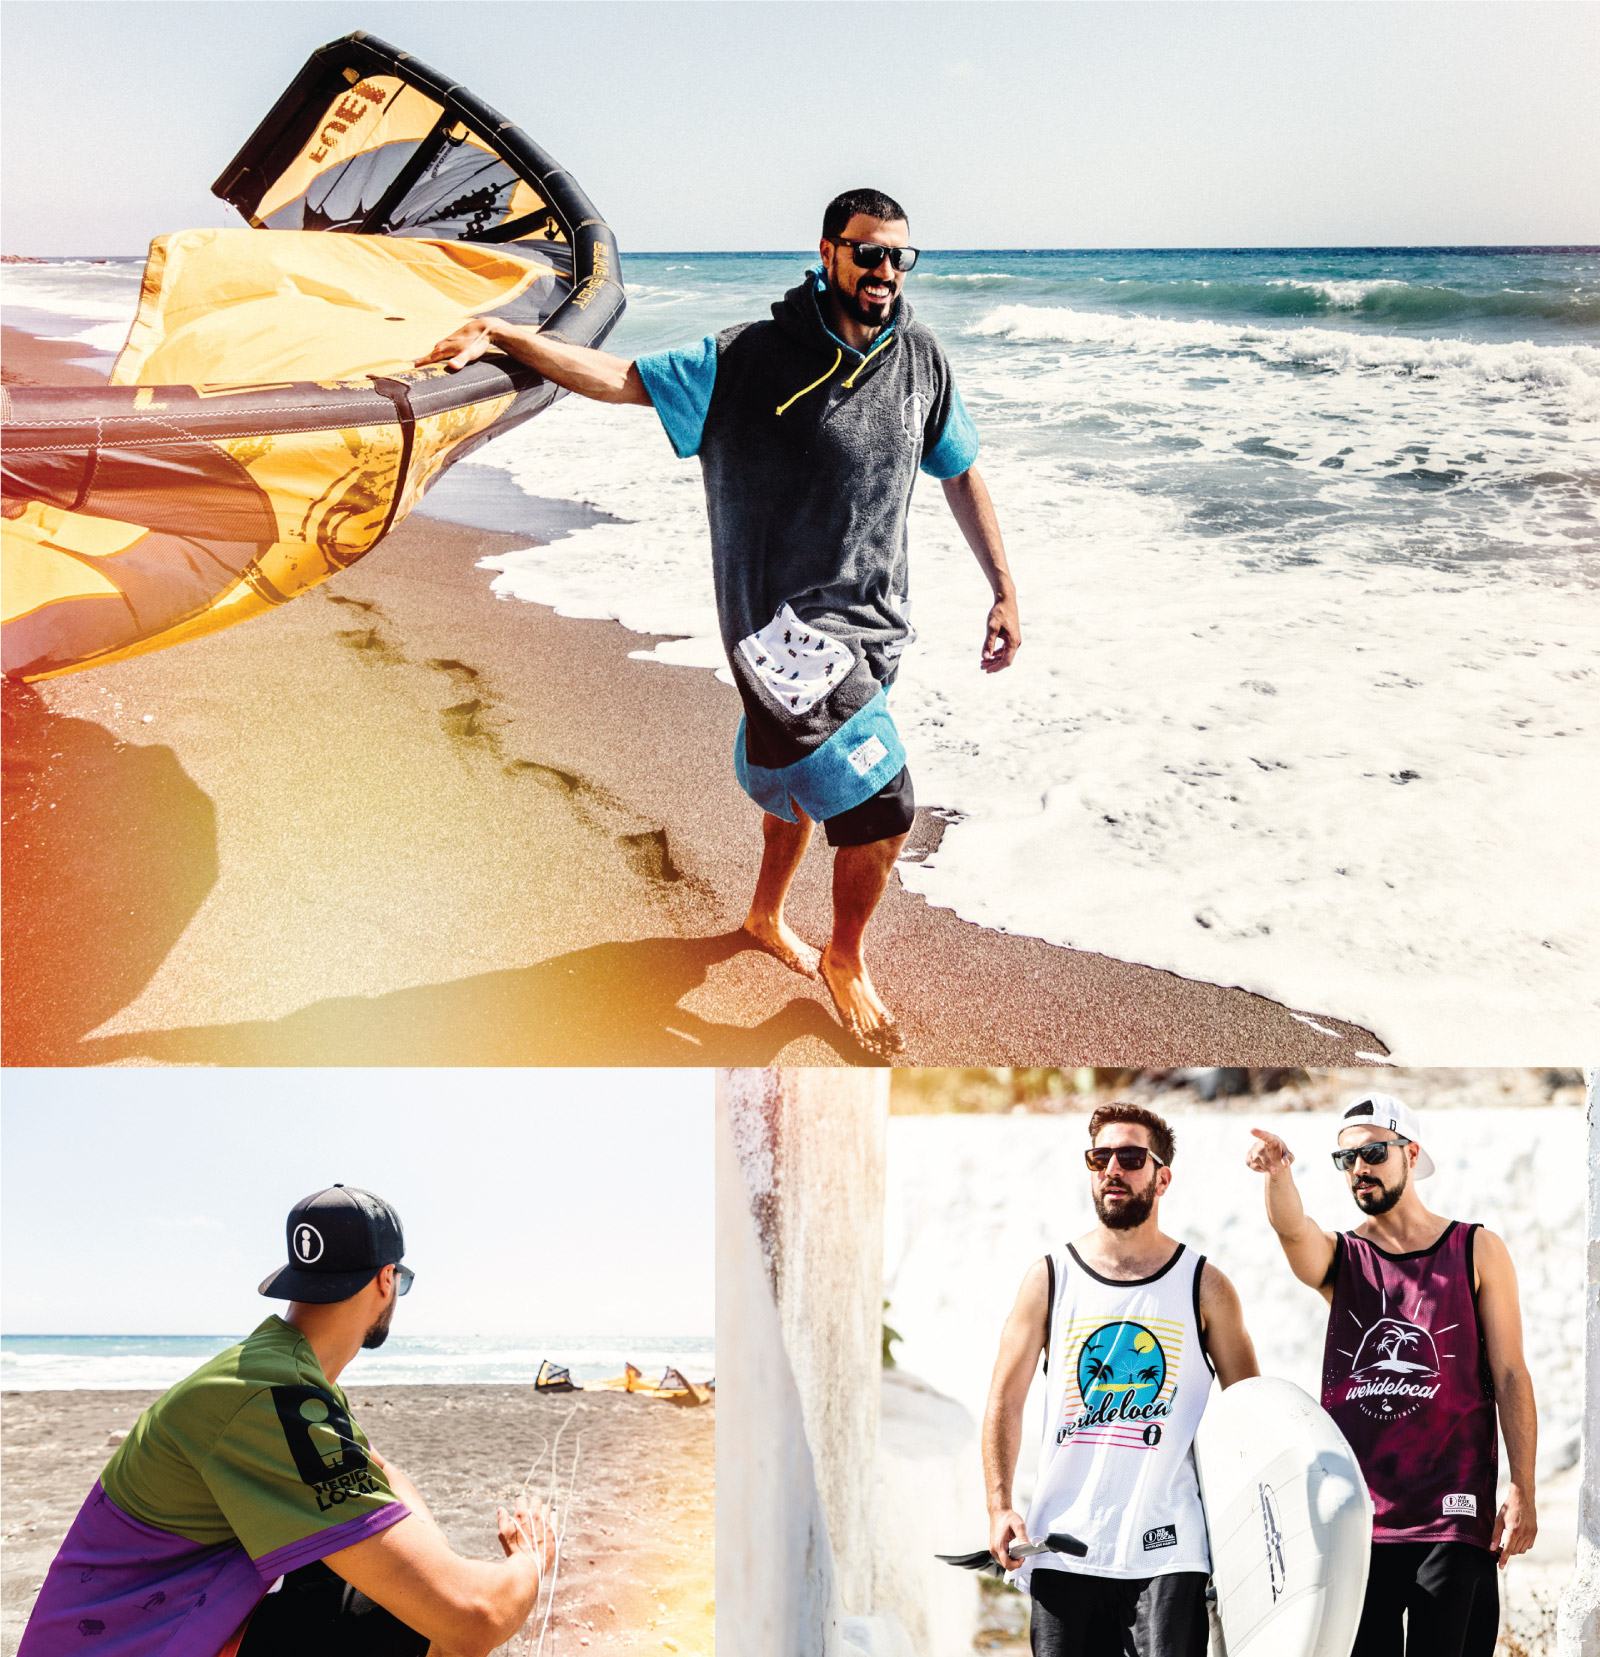 WWW.WERIDELOCAL.COM-MEN-WOMEN-PONCHO-COTTON-TOWEL-JERSEY-RASH-VEST-QUICKDRY-BASKET-STYLE-LOOSE-TANK-TOP-T-SHIRT